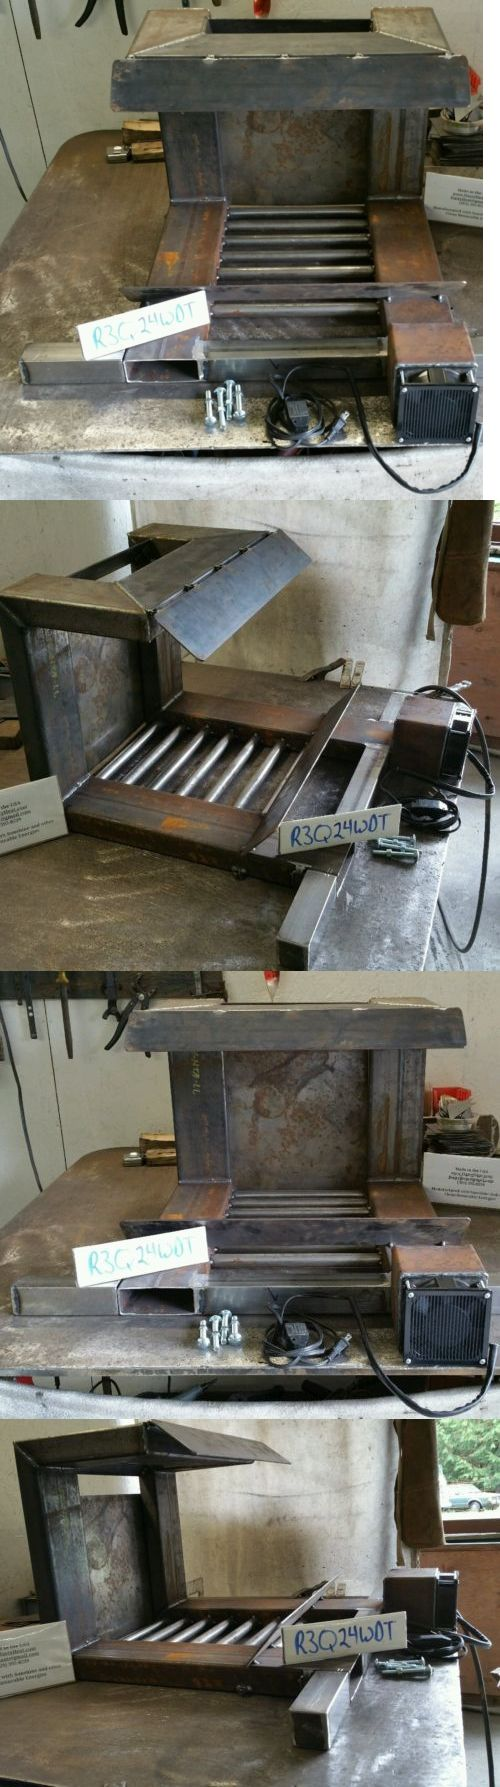 Andirons Grates and Firedogs 79648: R3q Heat Exchanger Fireplace Grate Furnace Blower Heatilator Fireback Heater Raw -> BUY IT NOW ONLY: $770 on eBay!